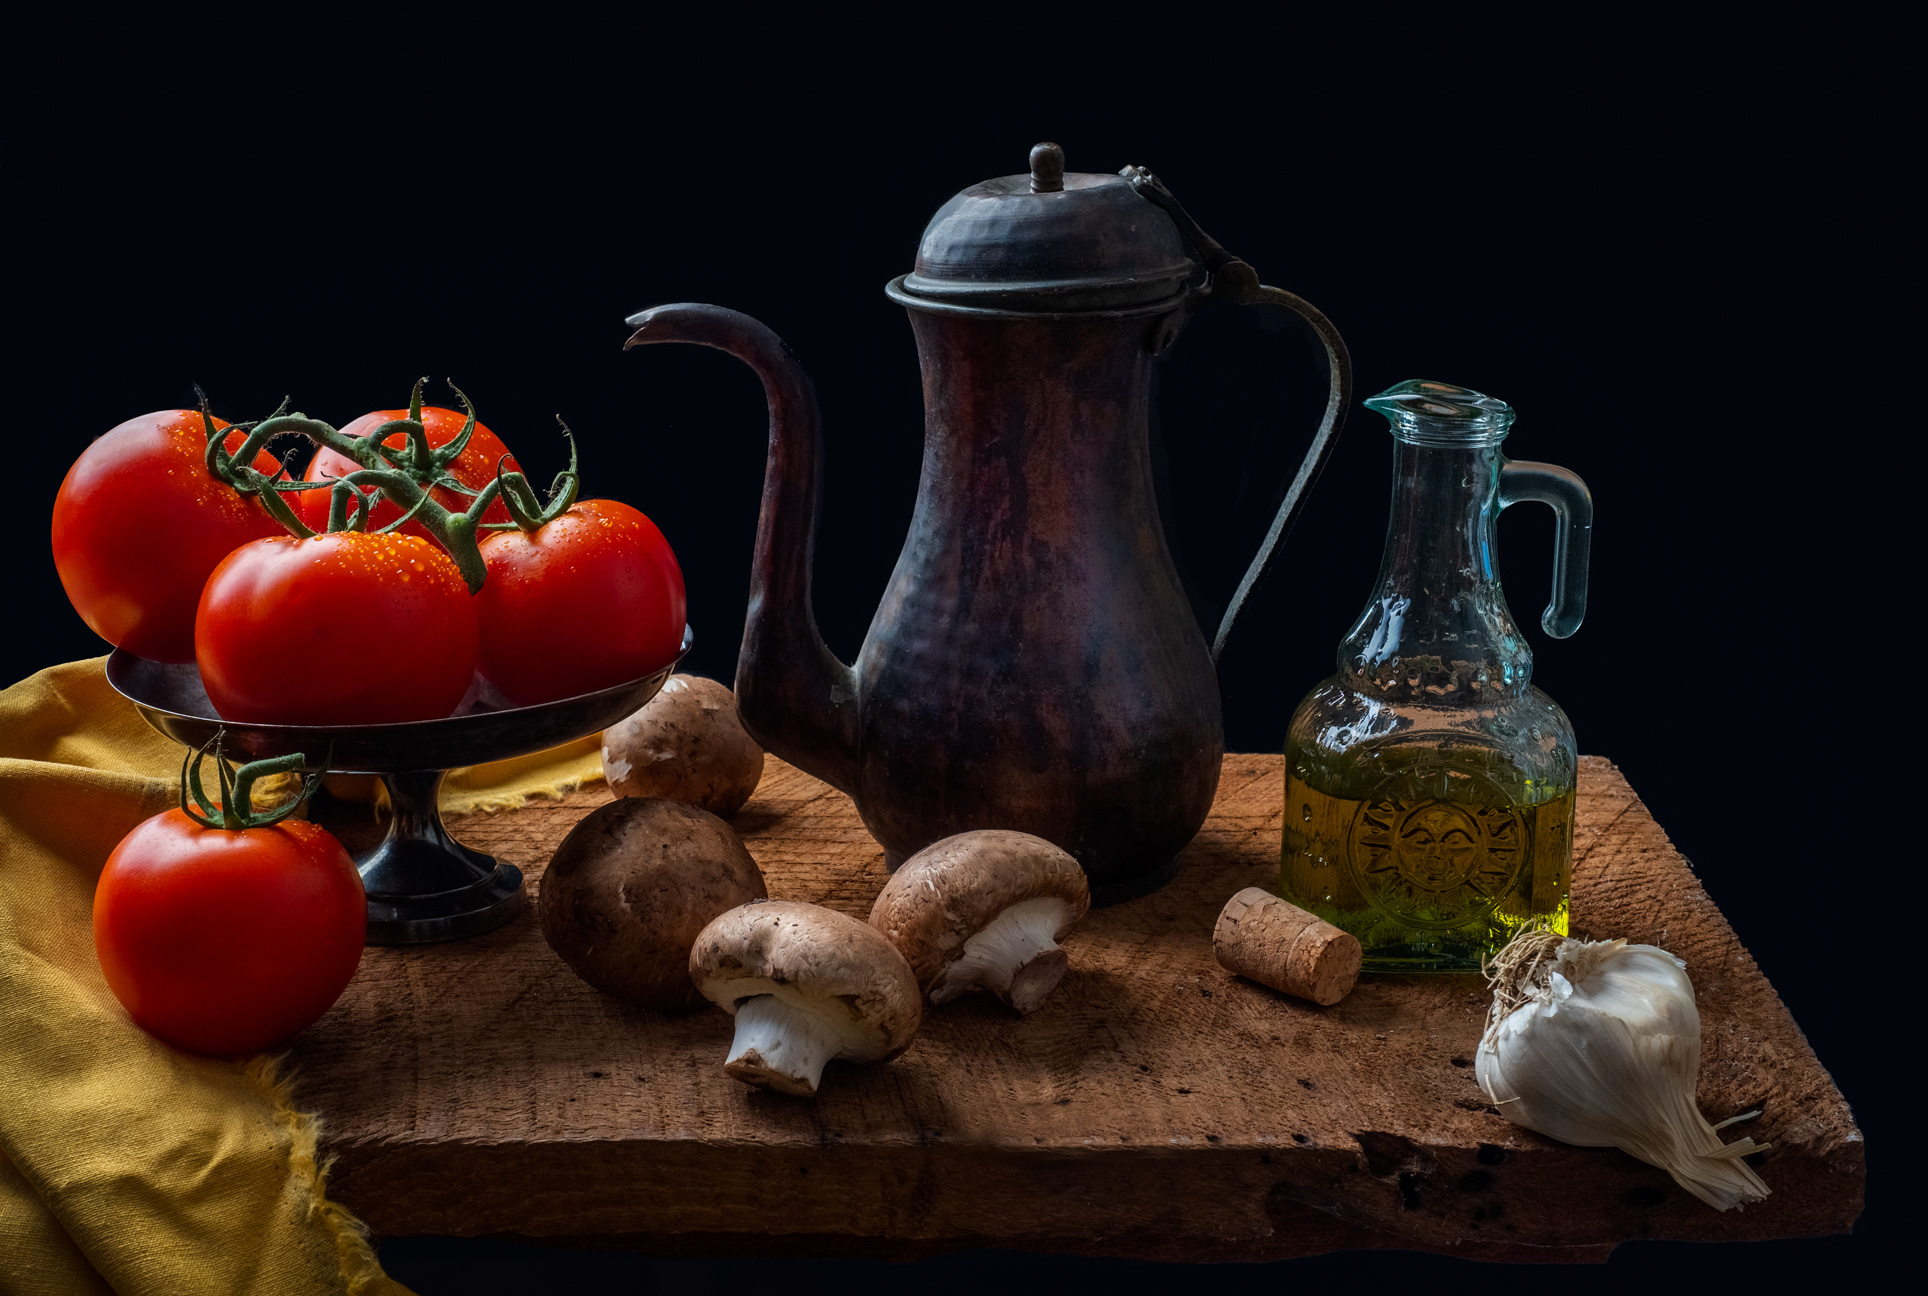 Tomatoes and Mushrooms, a Still Life